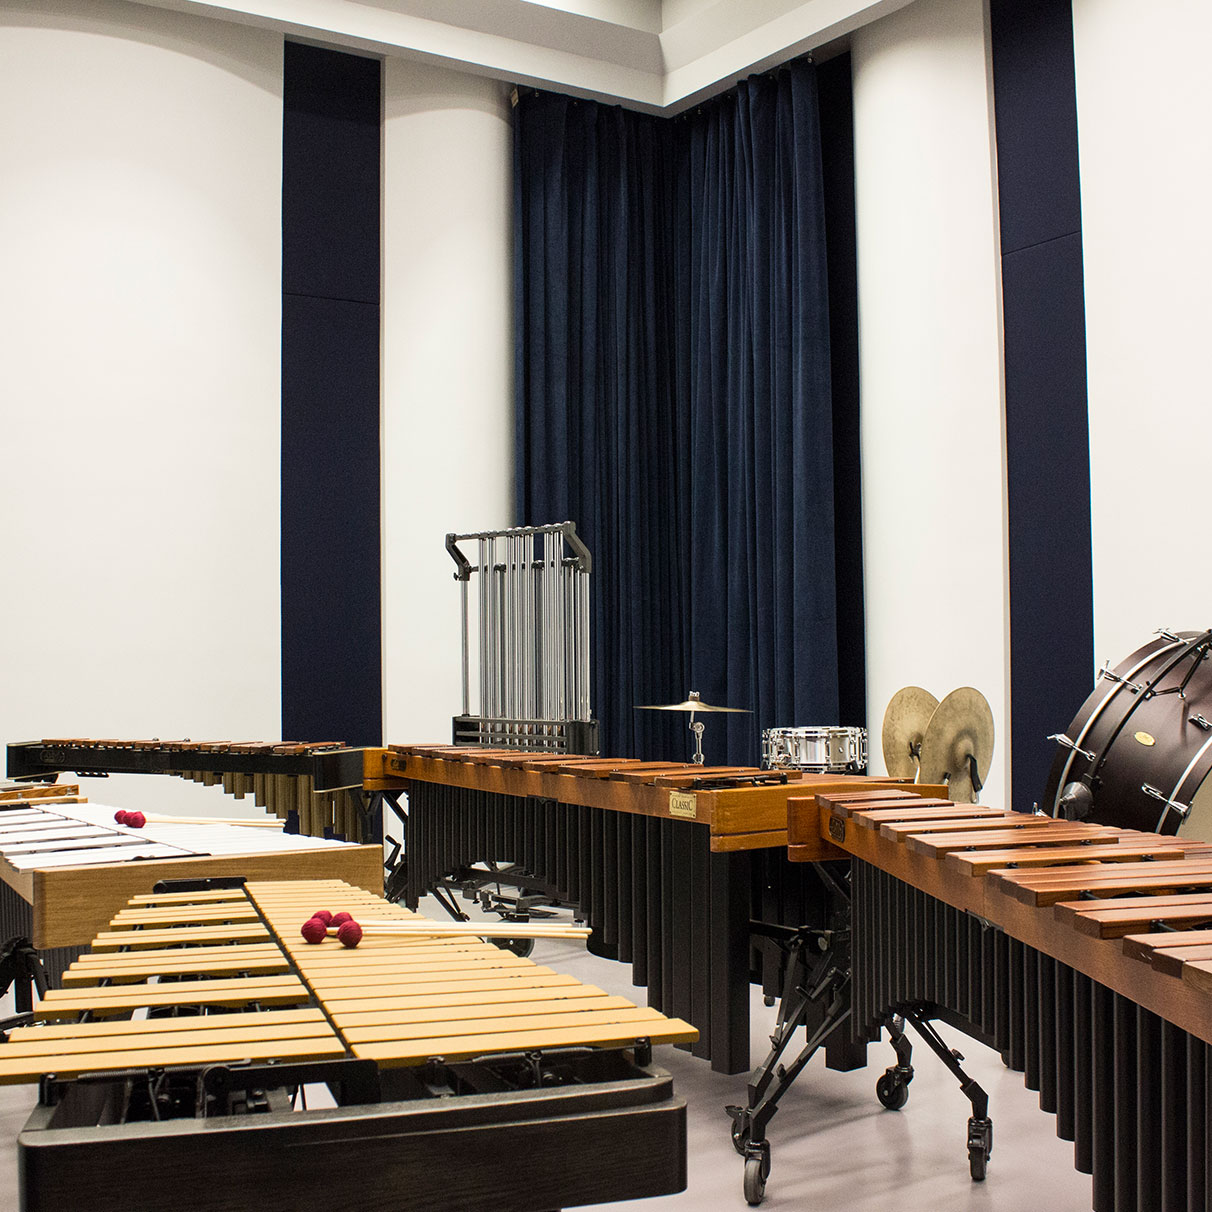 percussion-lab-room-has-a-variety-of-percussion-instruments-set-up